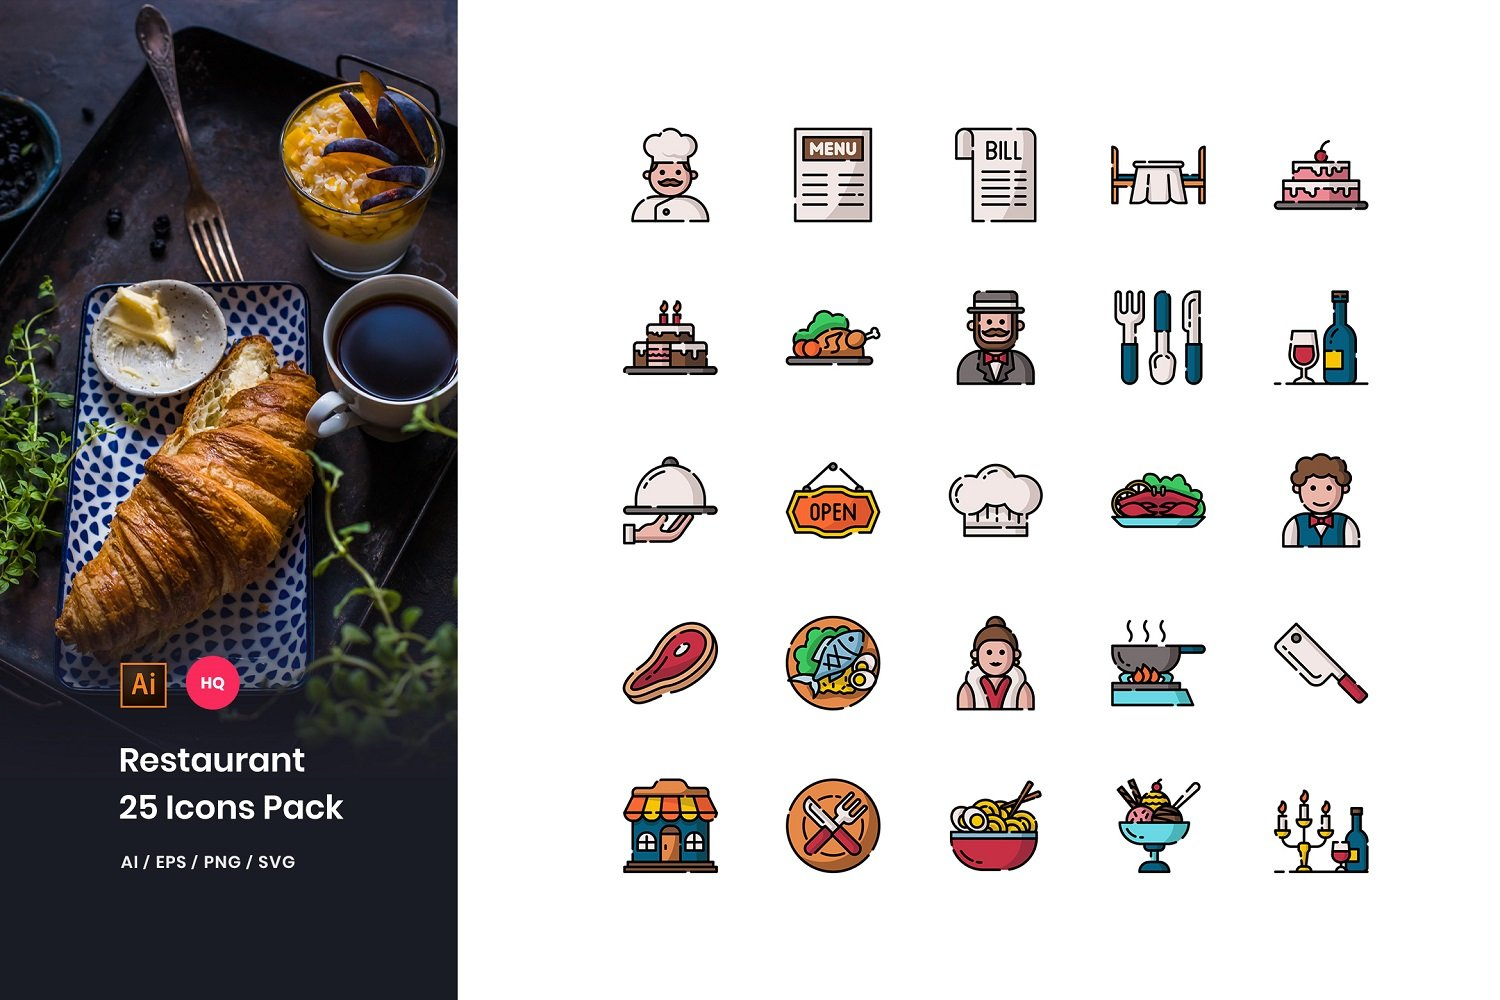 Restaurant Pack Iconset Template